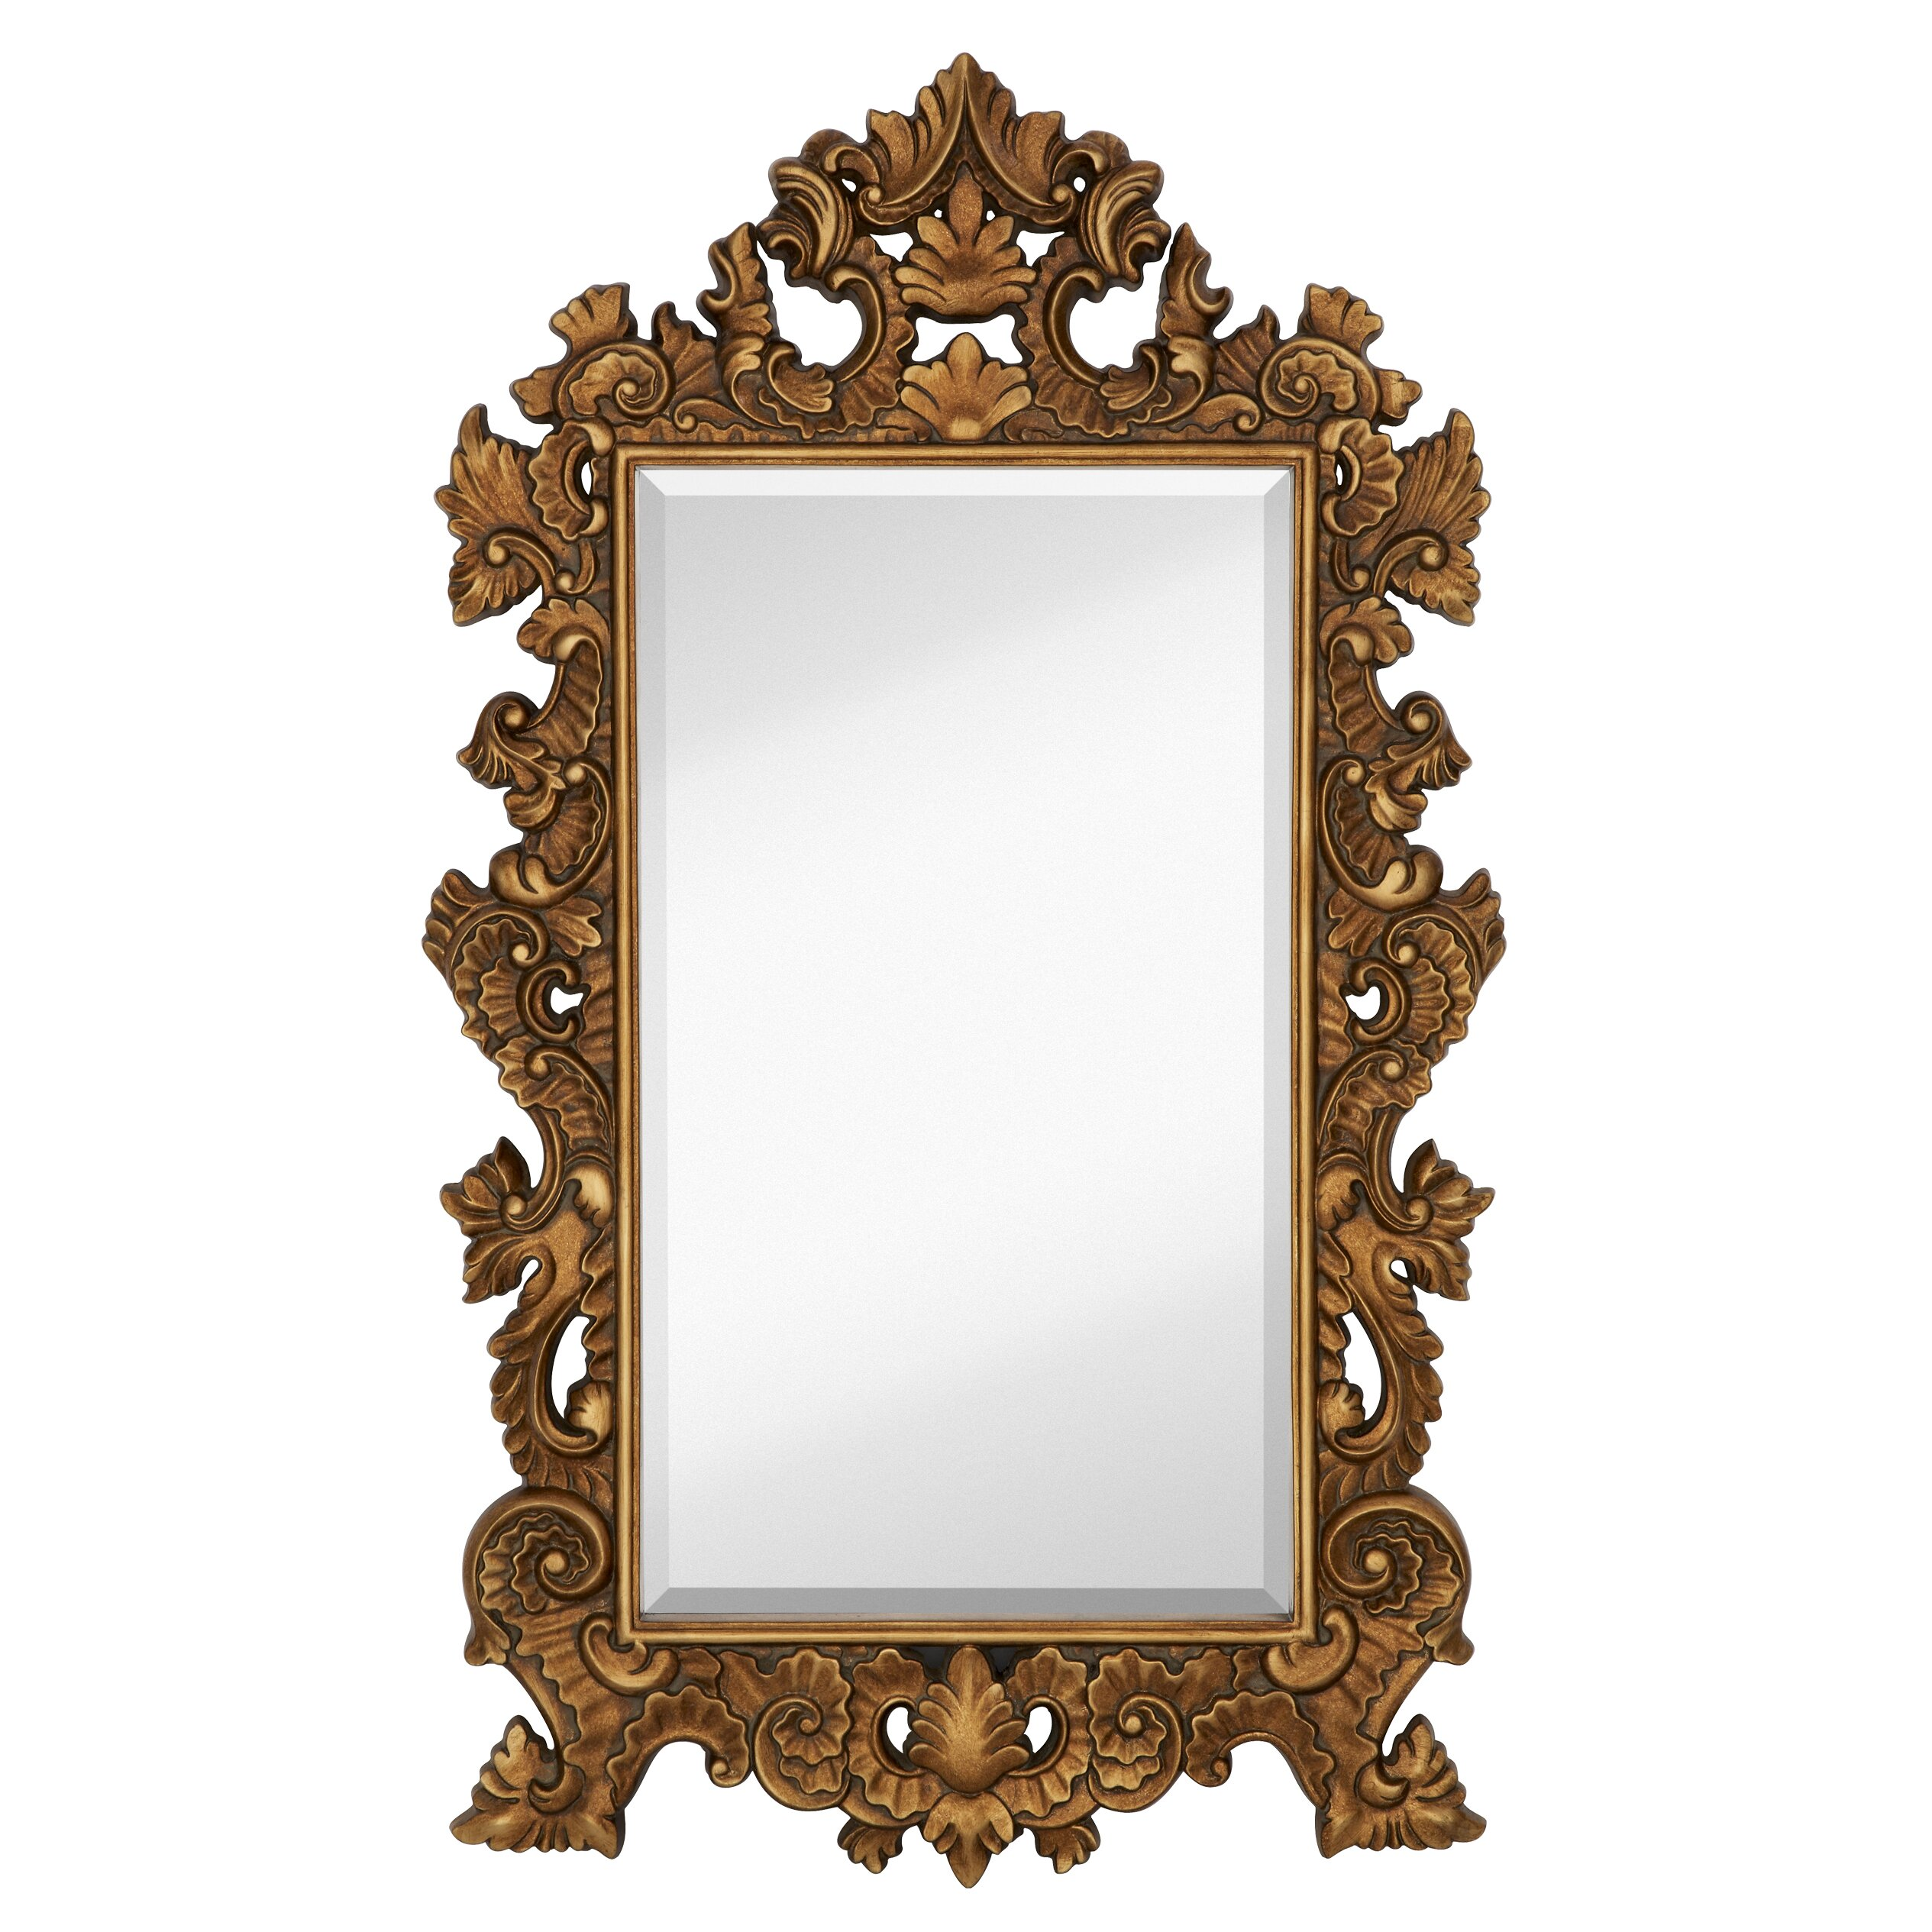 Majestic mirror tall rectangle traditional accent mirror for Traditional mirror